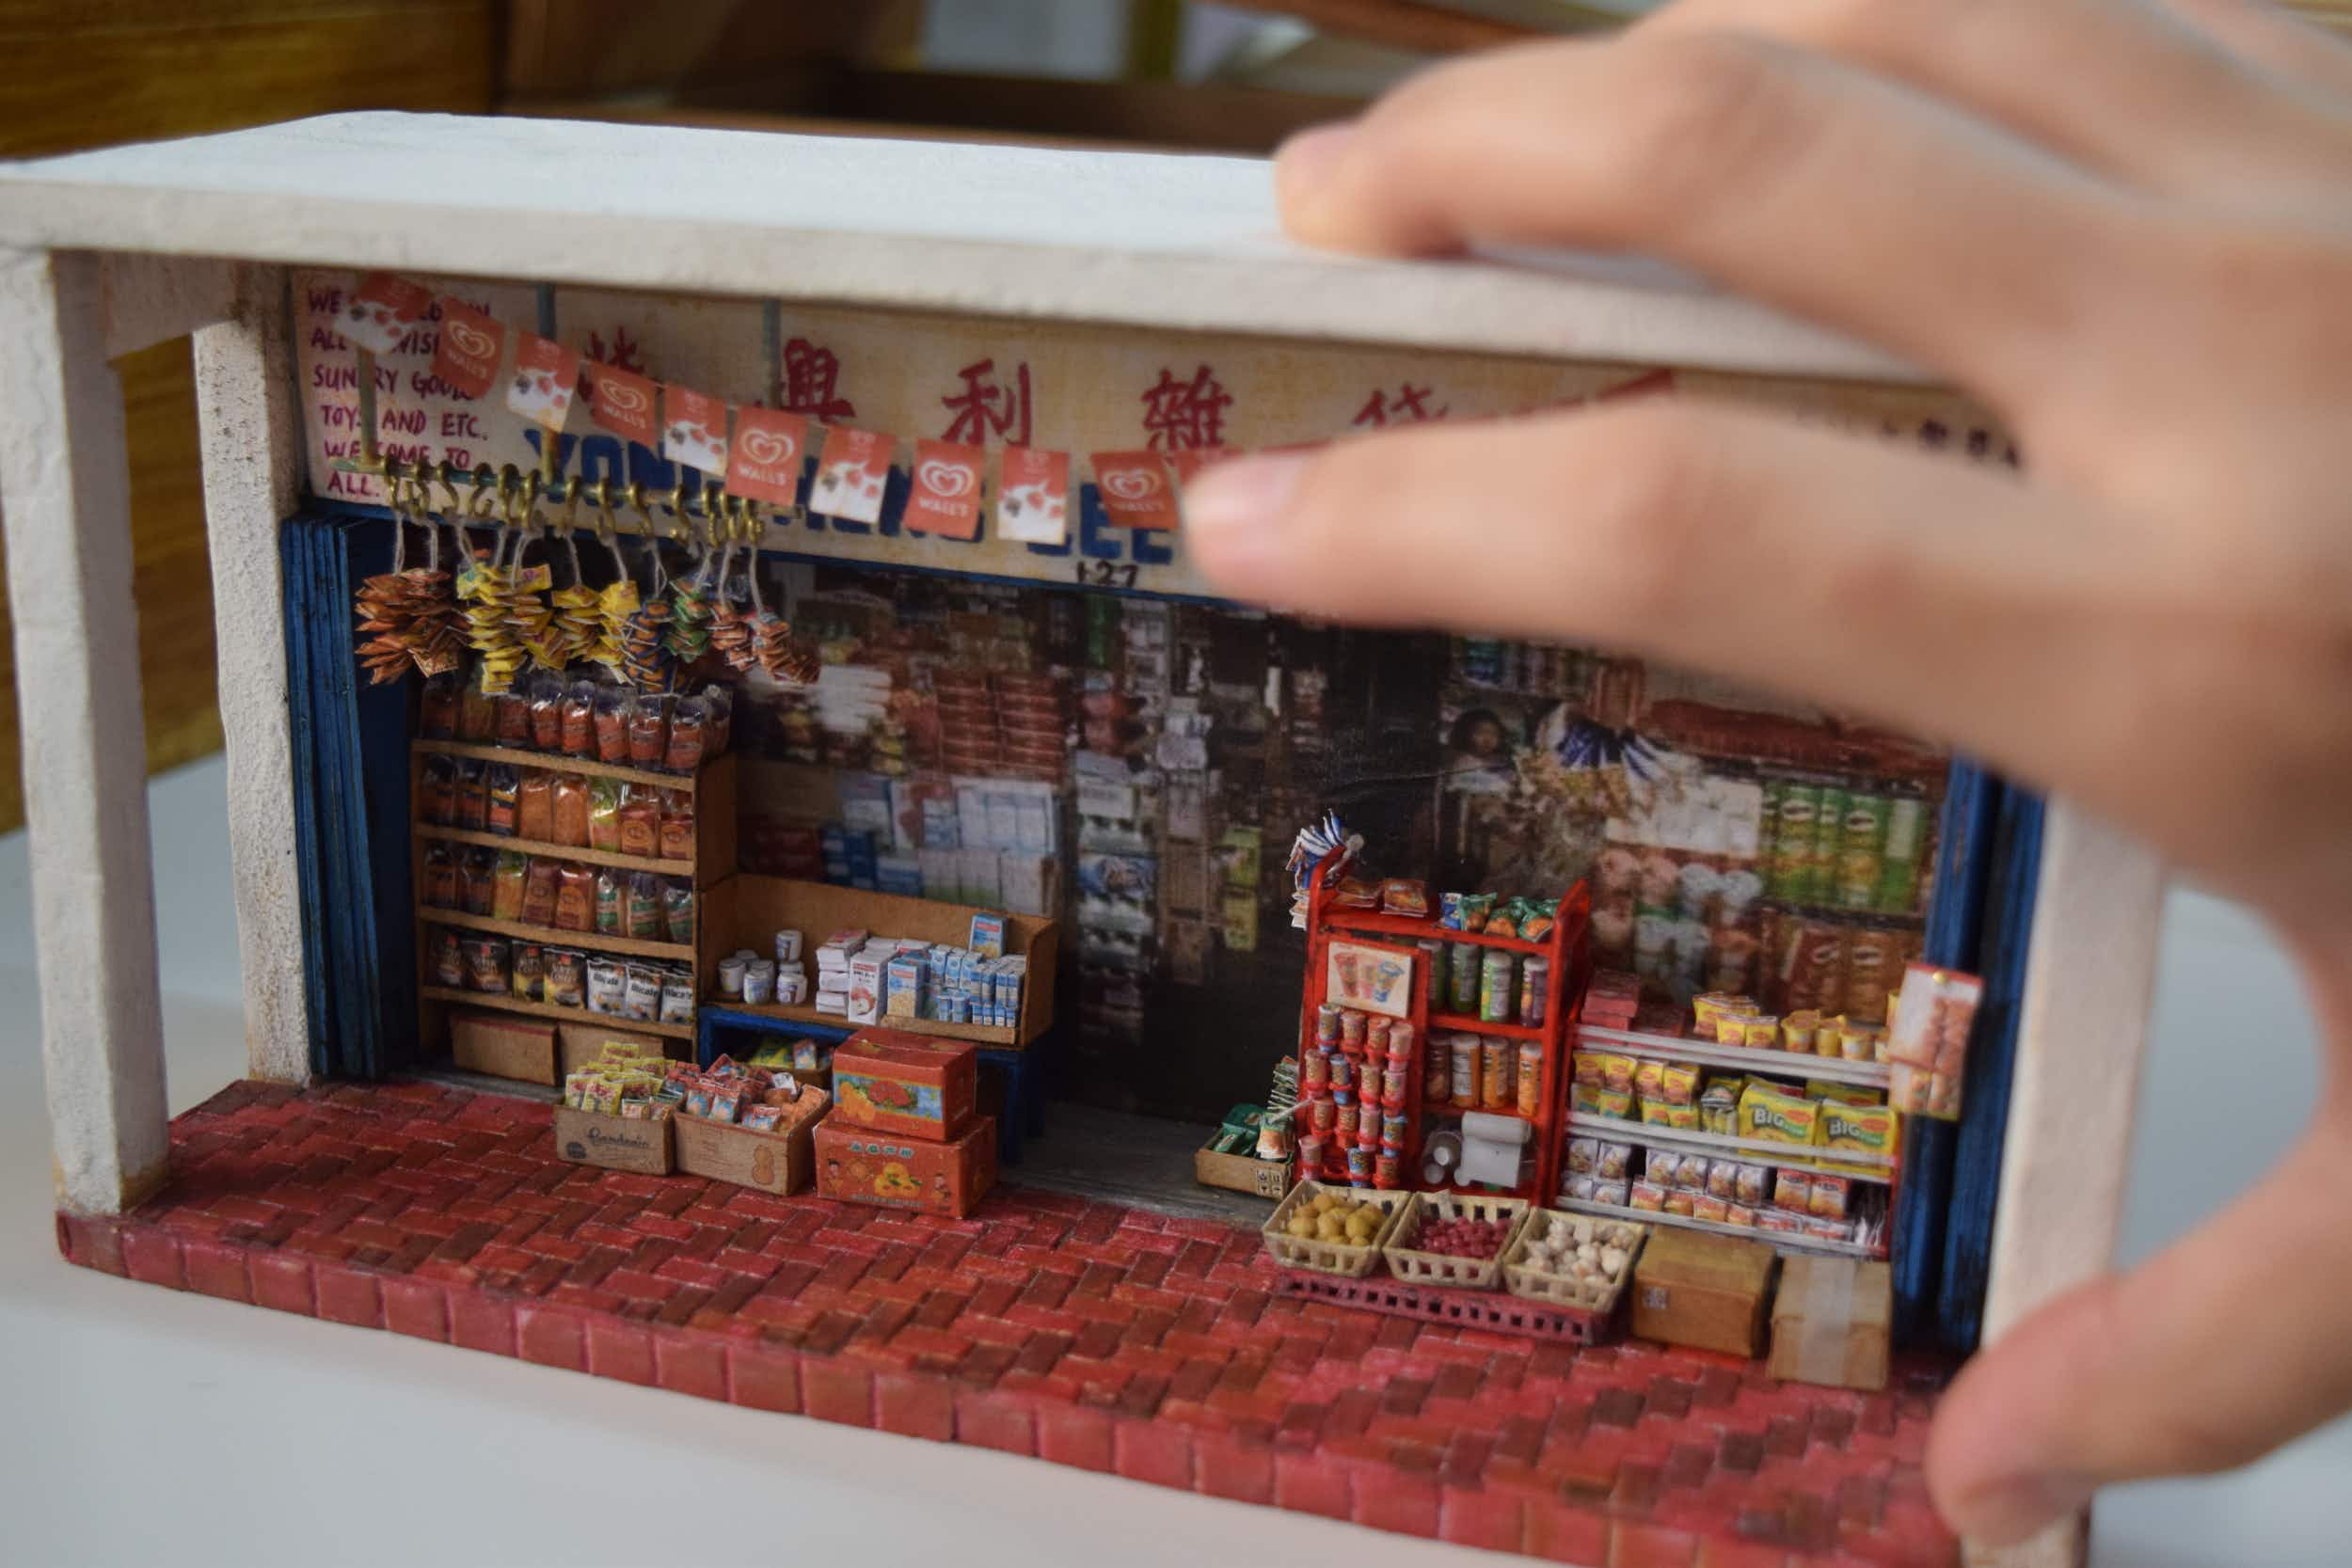 Discover Malaysian culture through this incredible miniature art